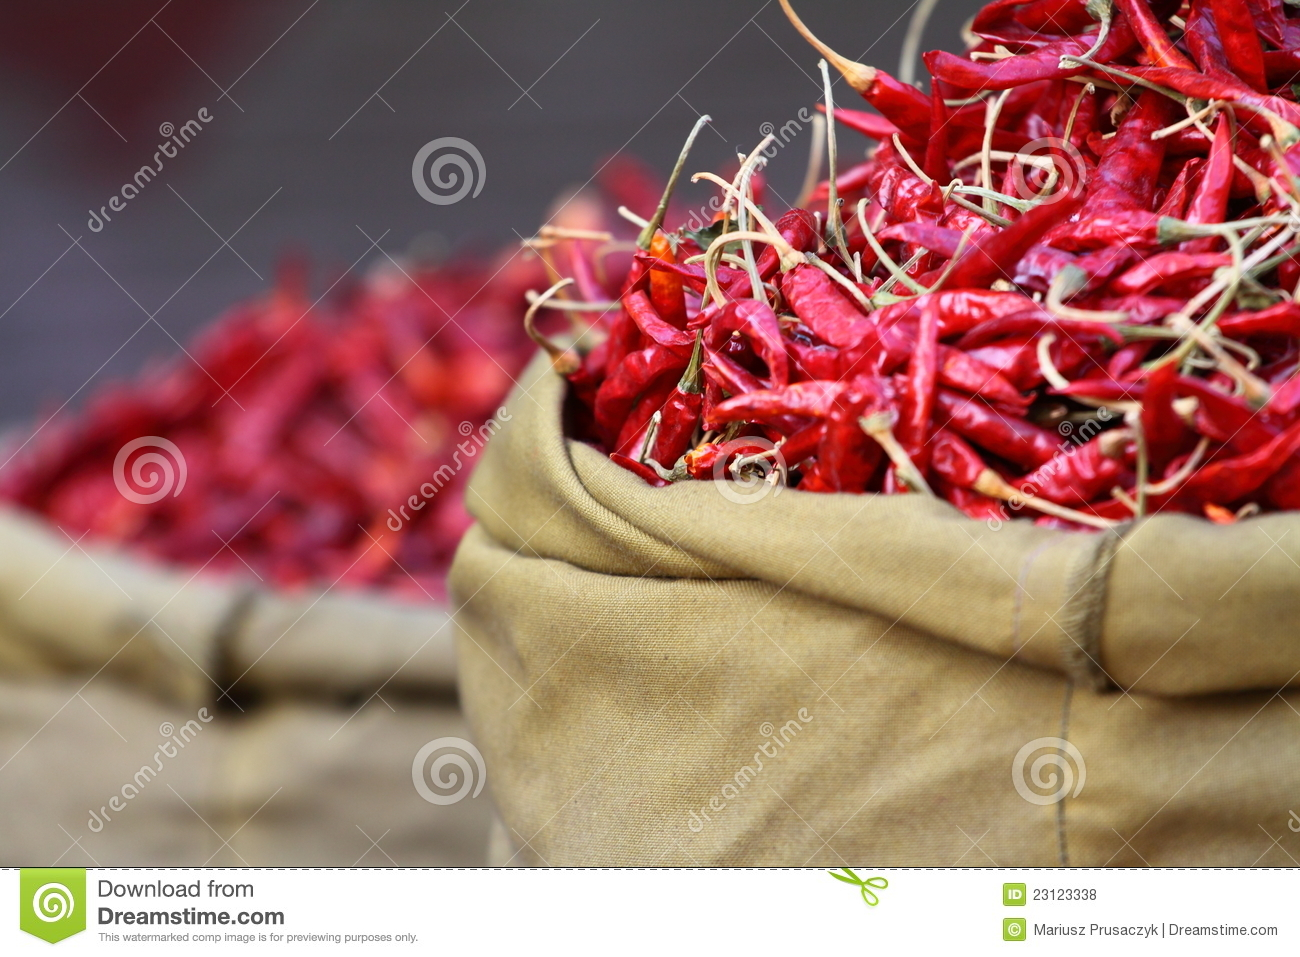 Red paprica in traditional vegetable market.